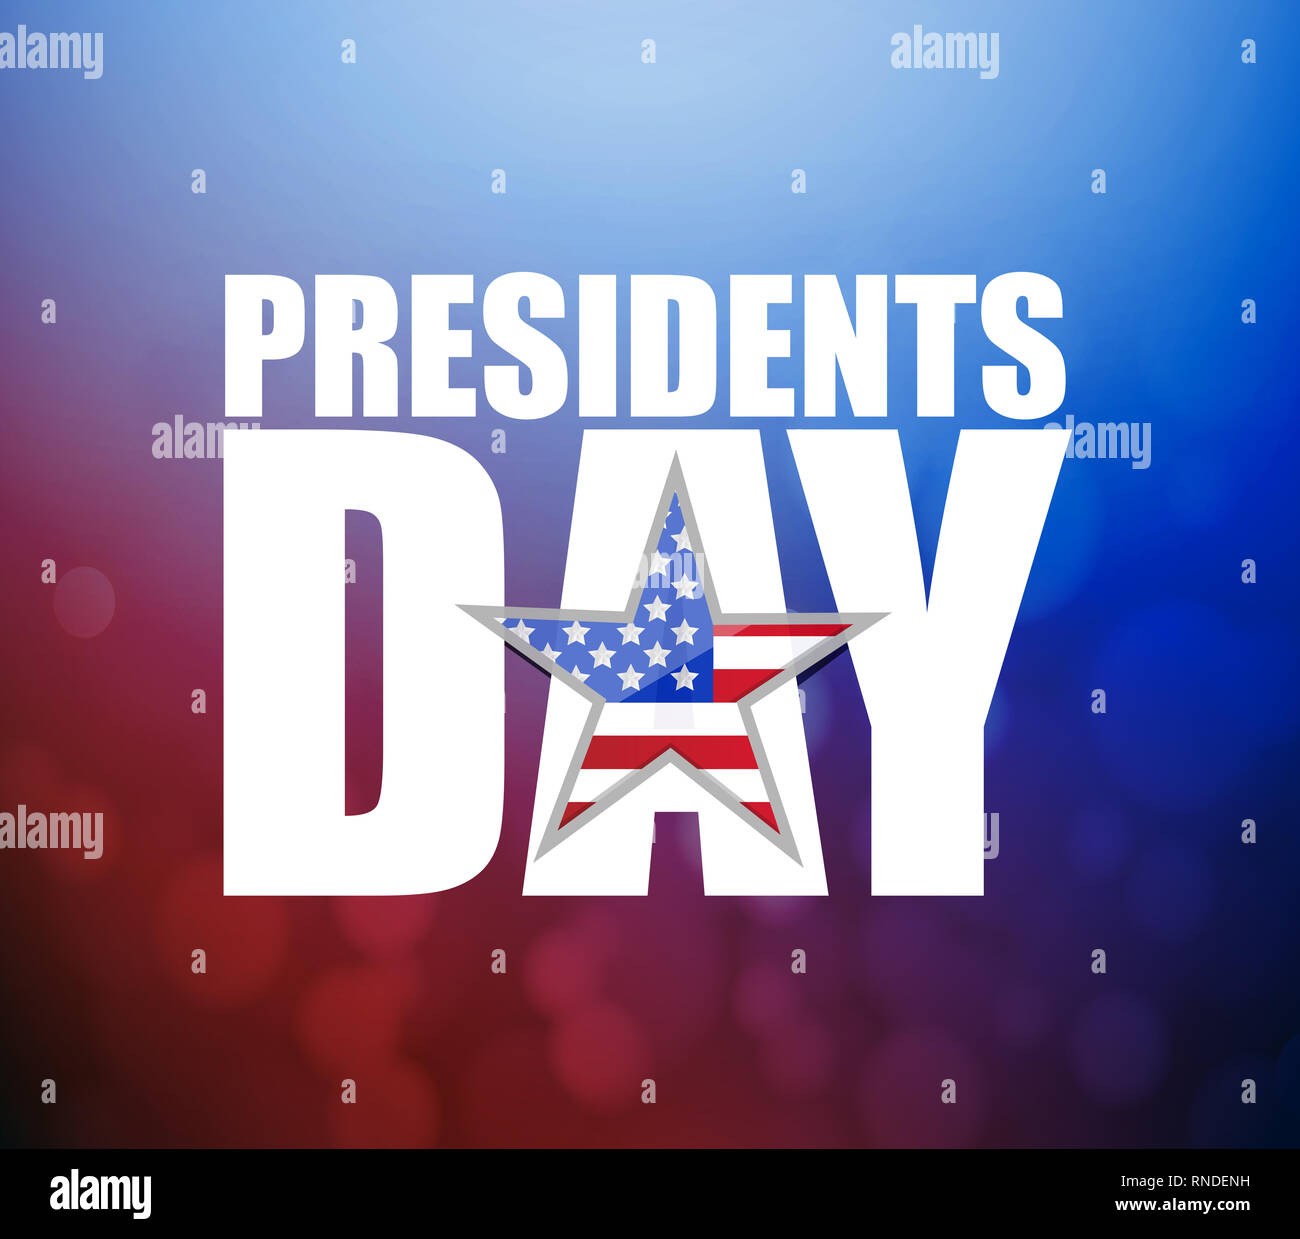 Presidents day sign illustration booked background. US patriotic background Stock Photo